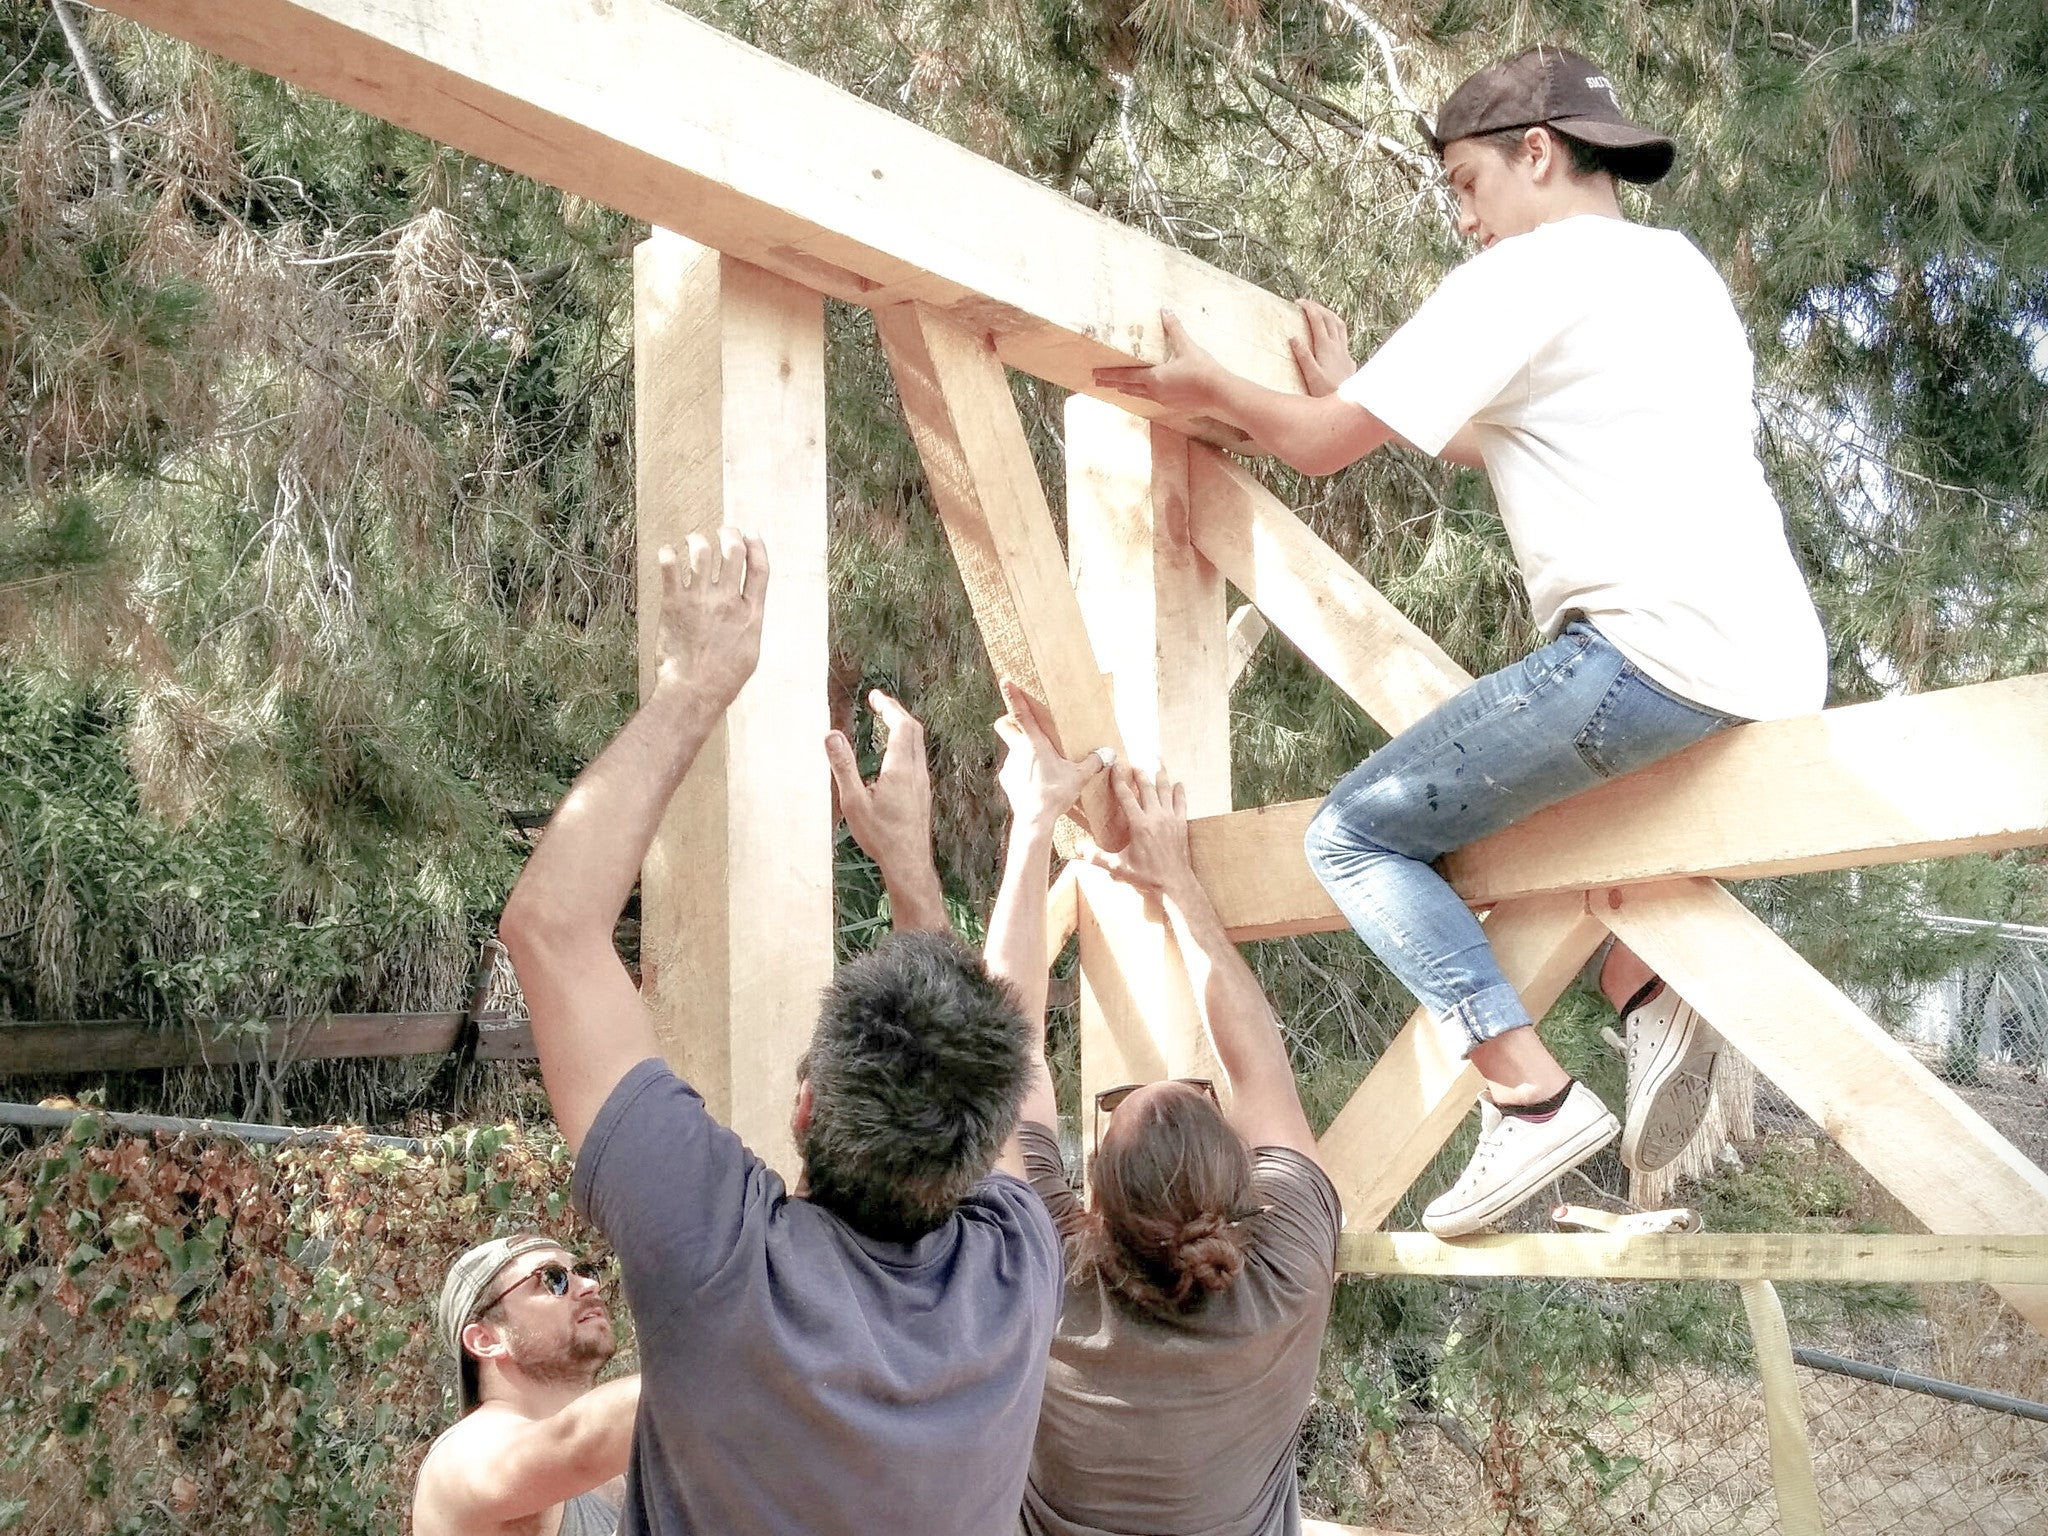 Woodworkers work together to erect and assemble large wooden beams